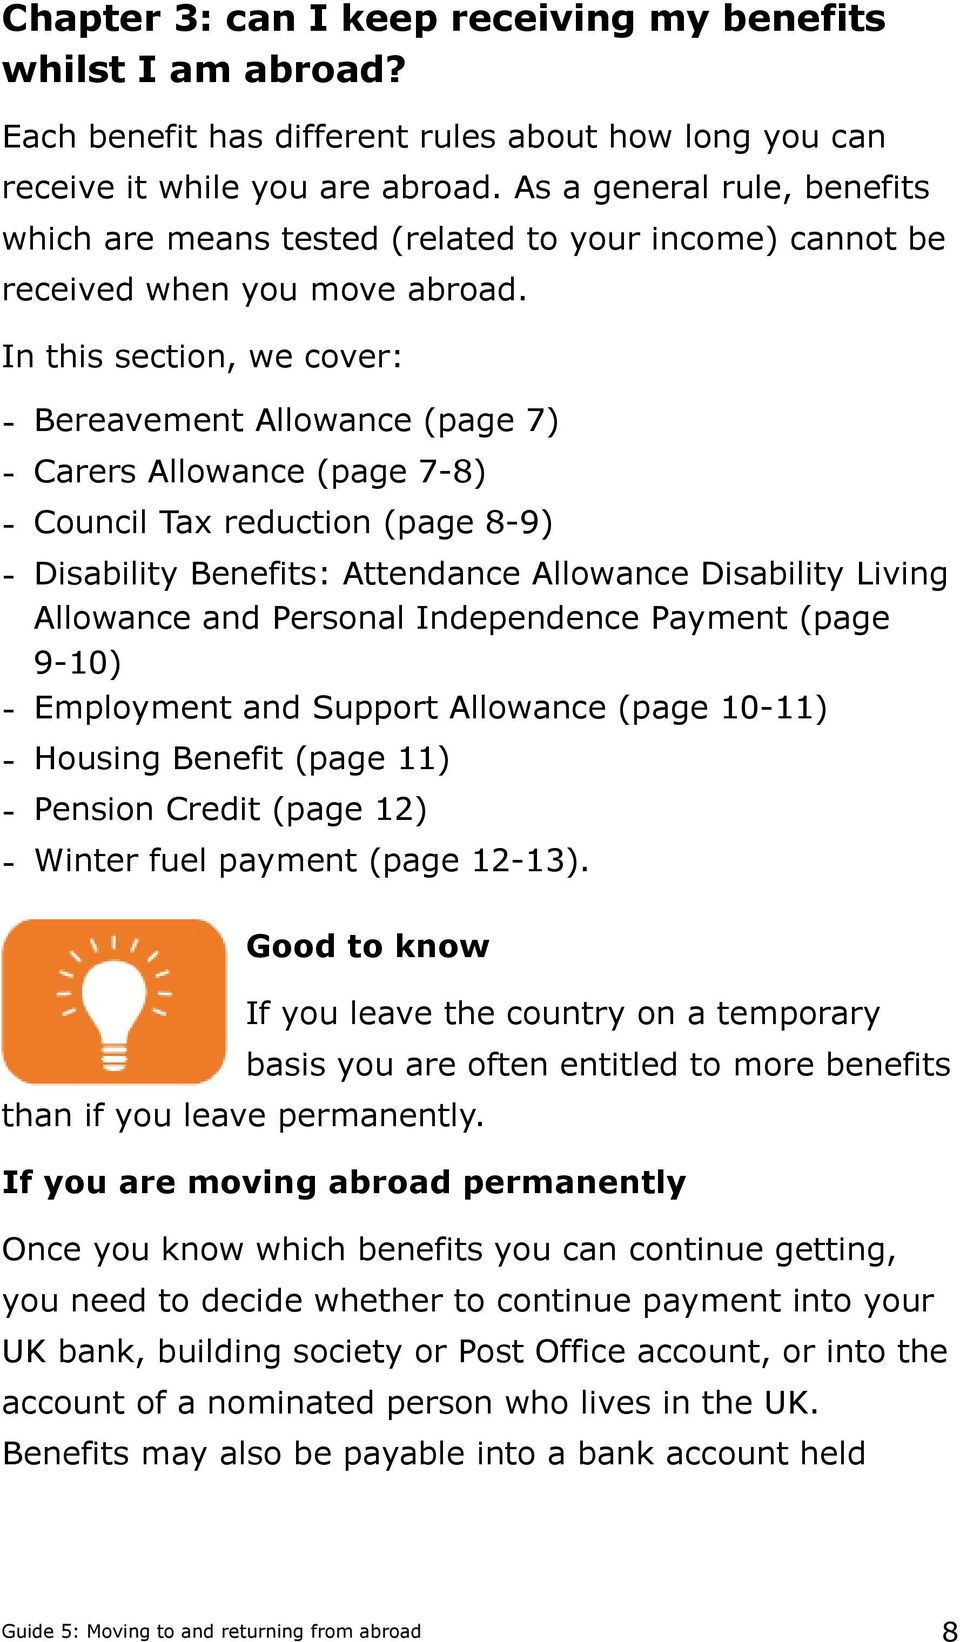 In this section, we cover: - Bereavement Allowance (page 7) - Carers Allowance (page 7-8) - Council Tax reduction (page 8-9) - Disability Benefits: Attendance Allowance Disability Living Allowance